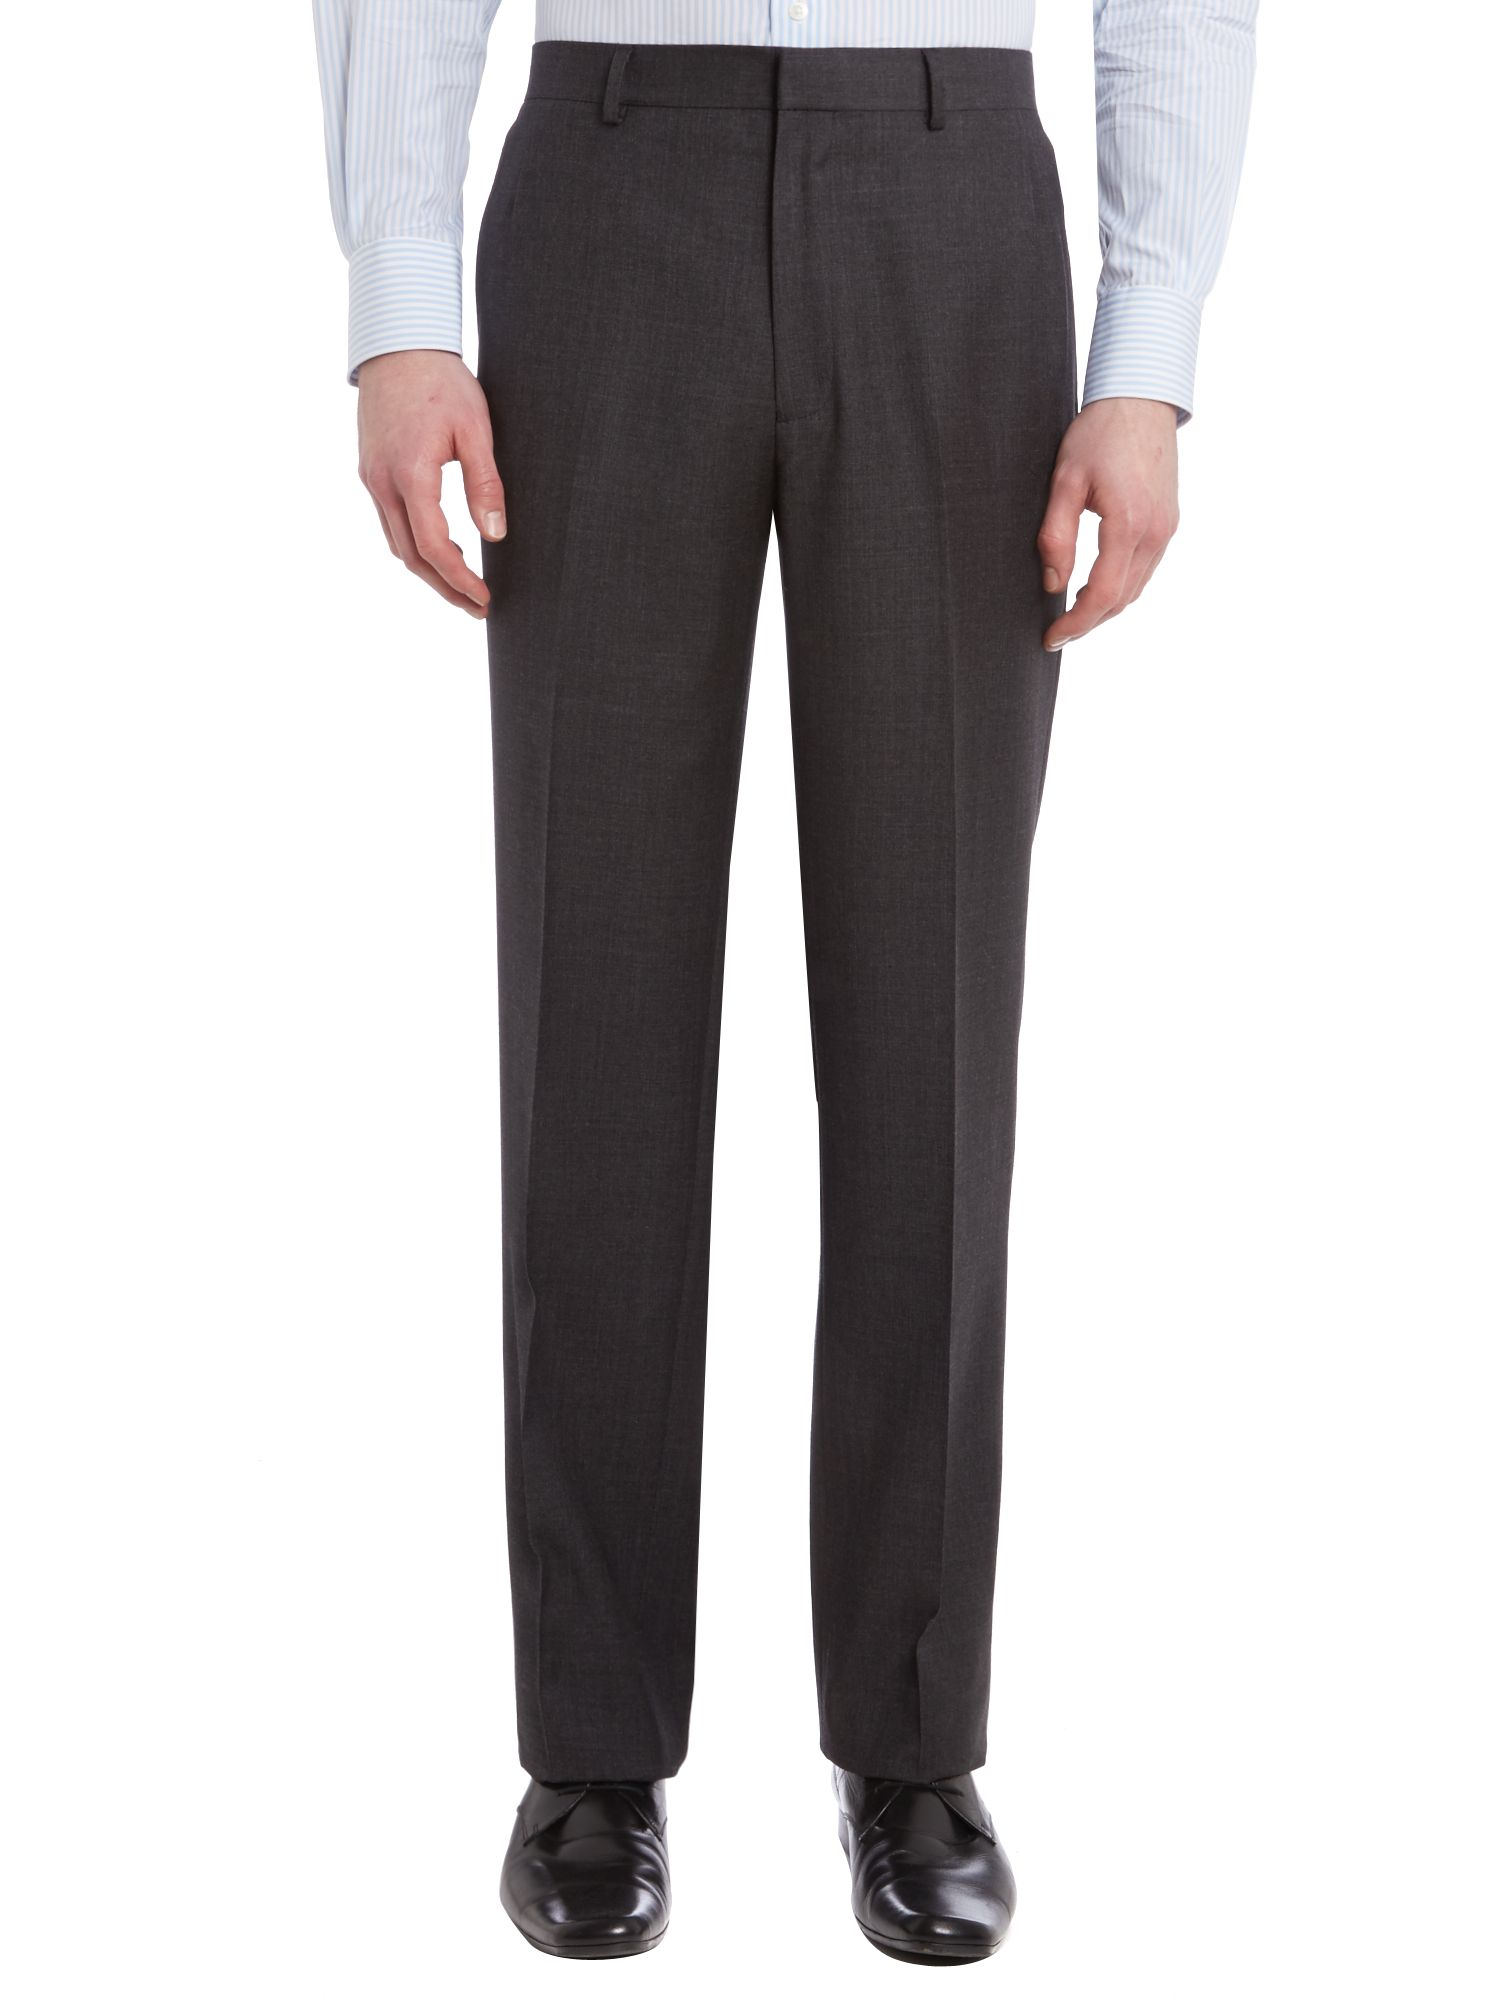 Chester Barrie Albemarle Contemporary Fit Suit in Grey (Grey) for Men